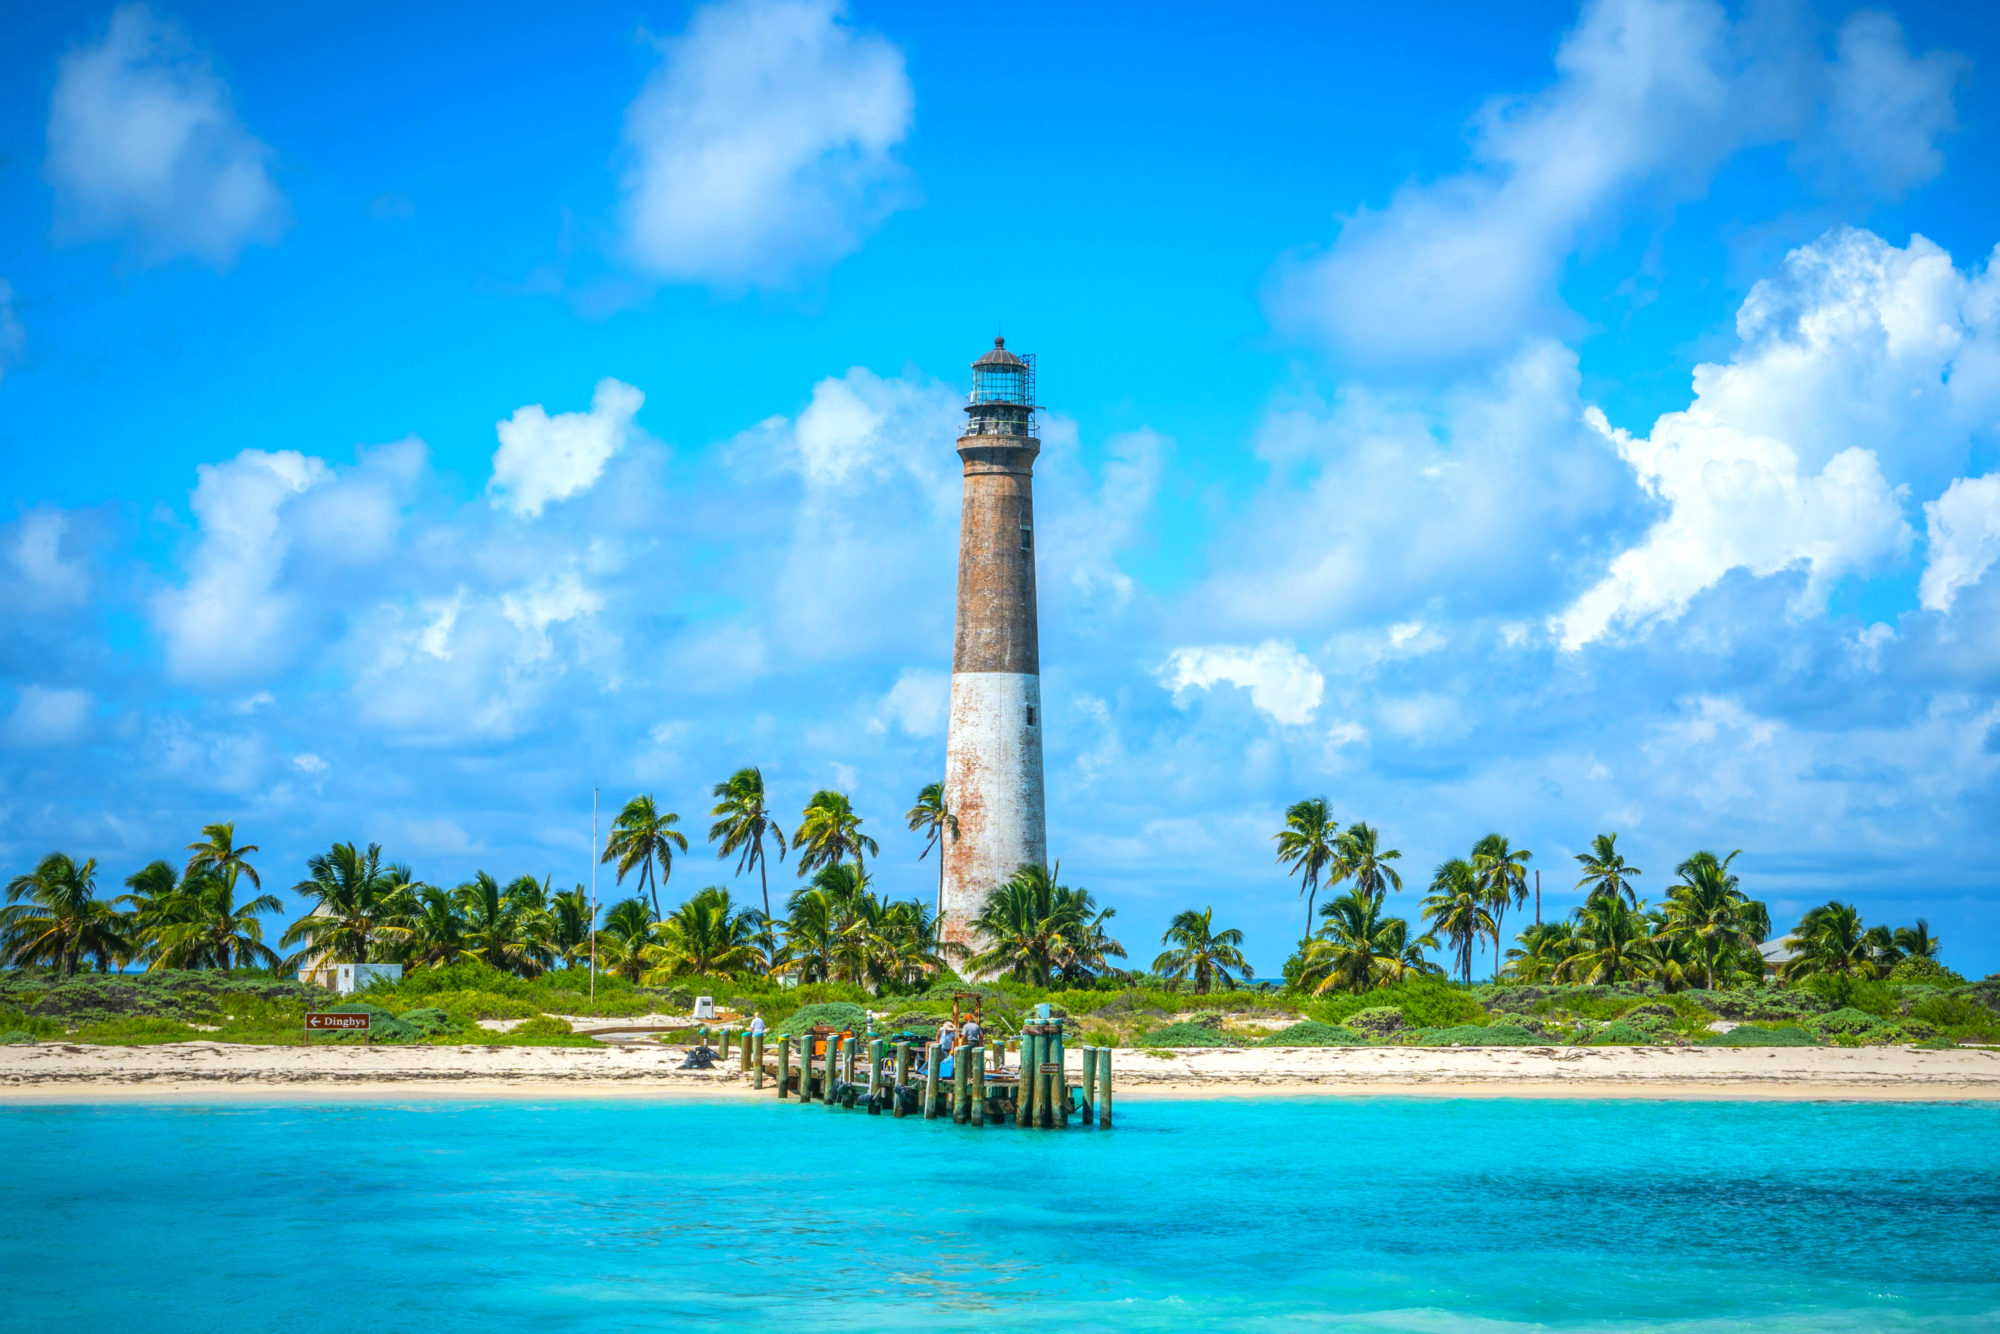 The Loggerhead Key Lighthouse, Florida